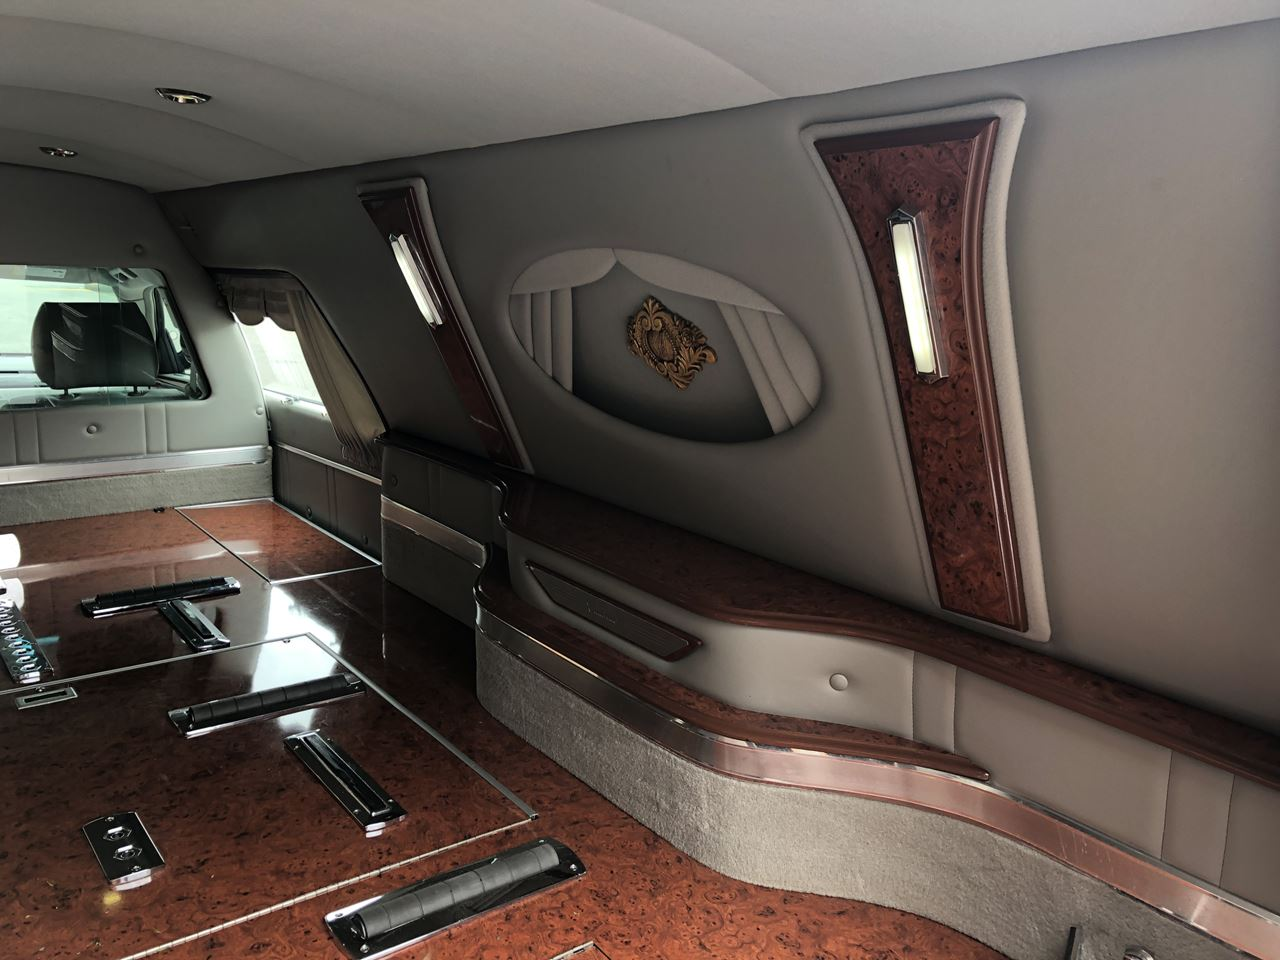 2011 Cadillac Eagle Kingsley Hearse 18 8